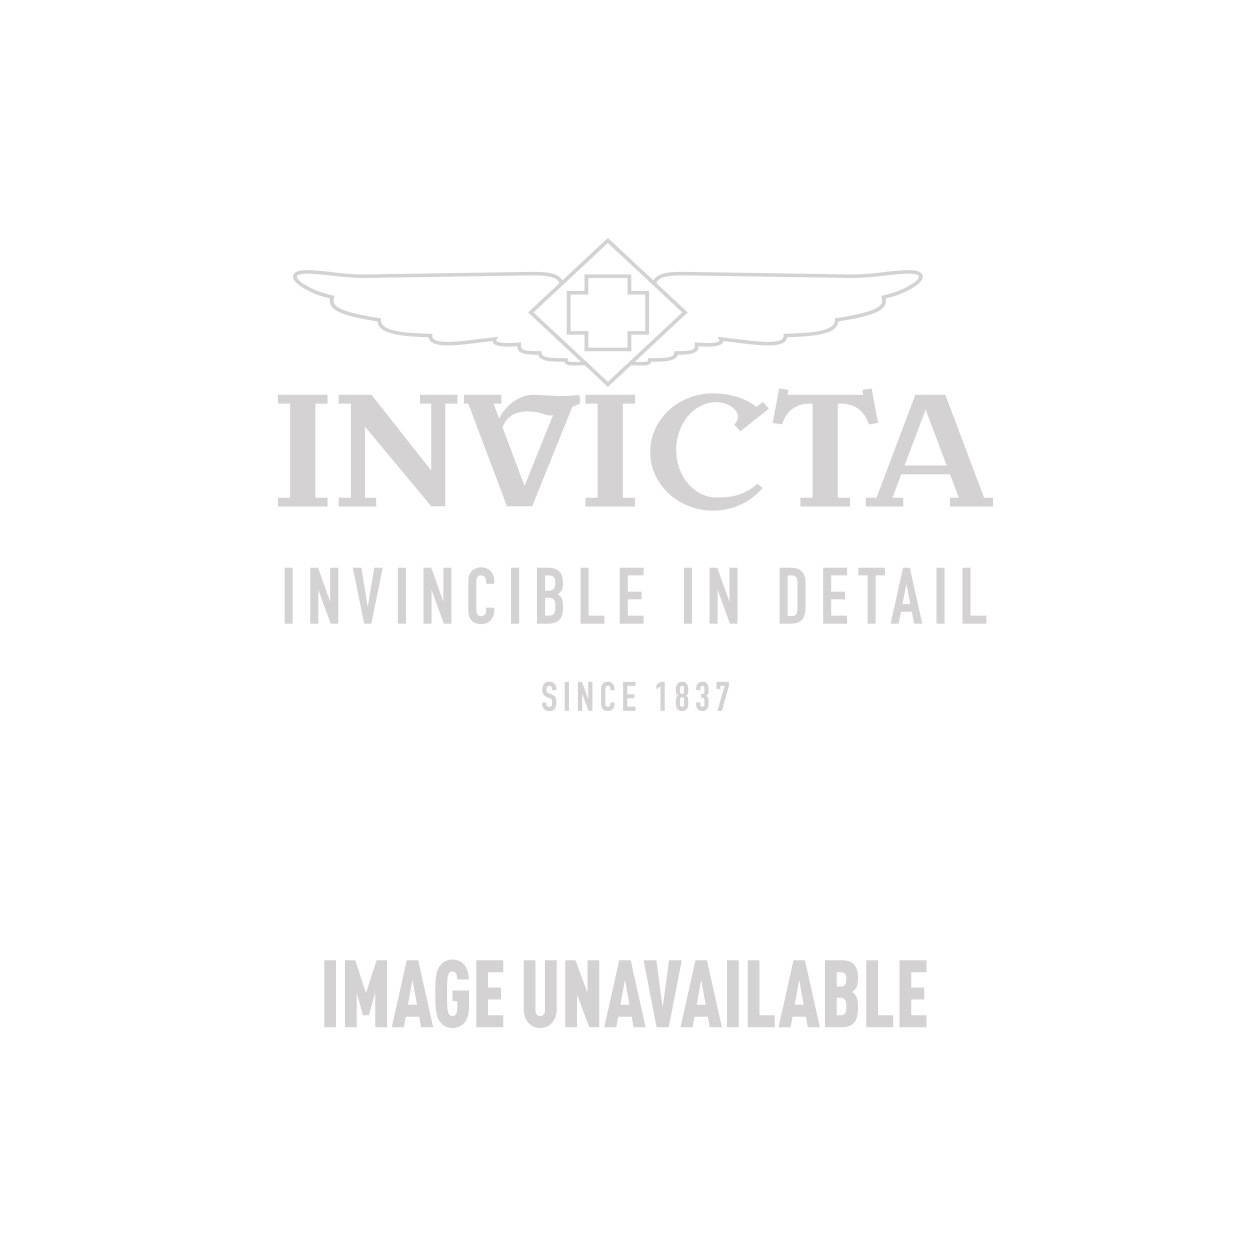 Invicta S. Coifman Swiss Movement Quartz Watch - Stainless Steel case Stainless Steel band - Model SC0337